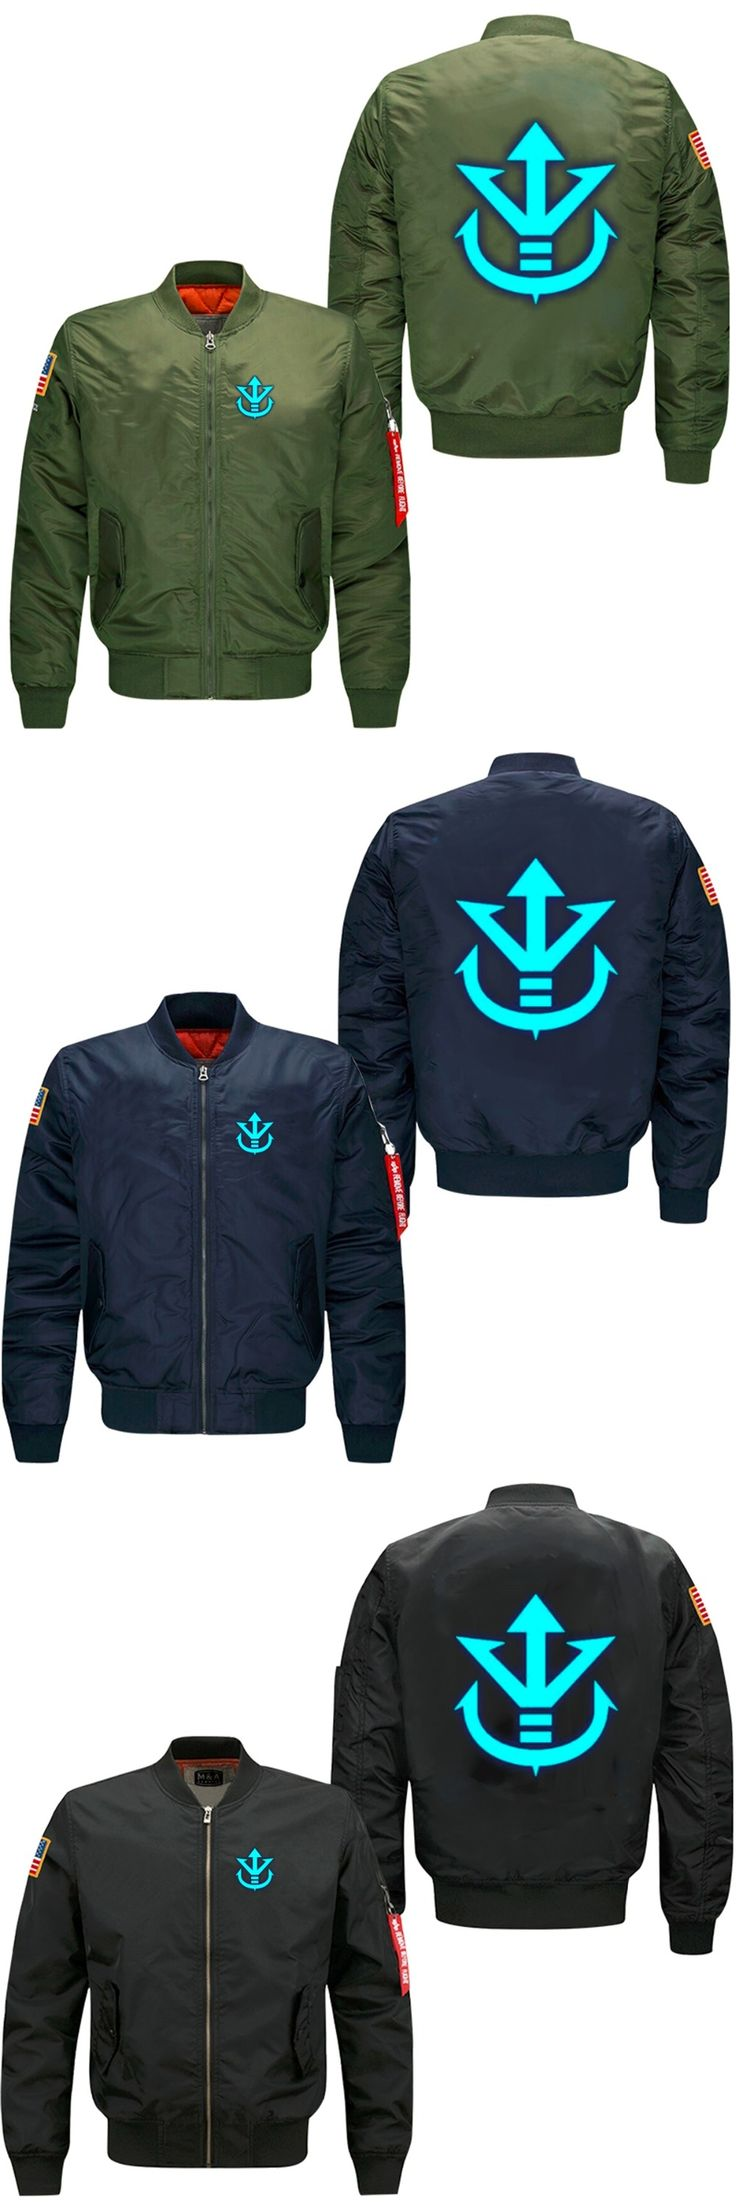 2017 Anime Dragon Ball Z Vegeta Saiyan Royal Crest Air Force pilots jacket spring autumn men's leisure jacket collar code